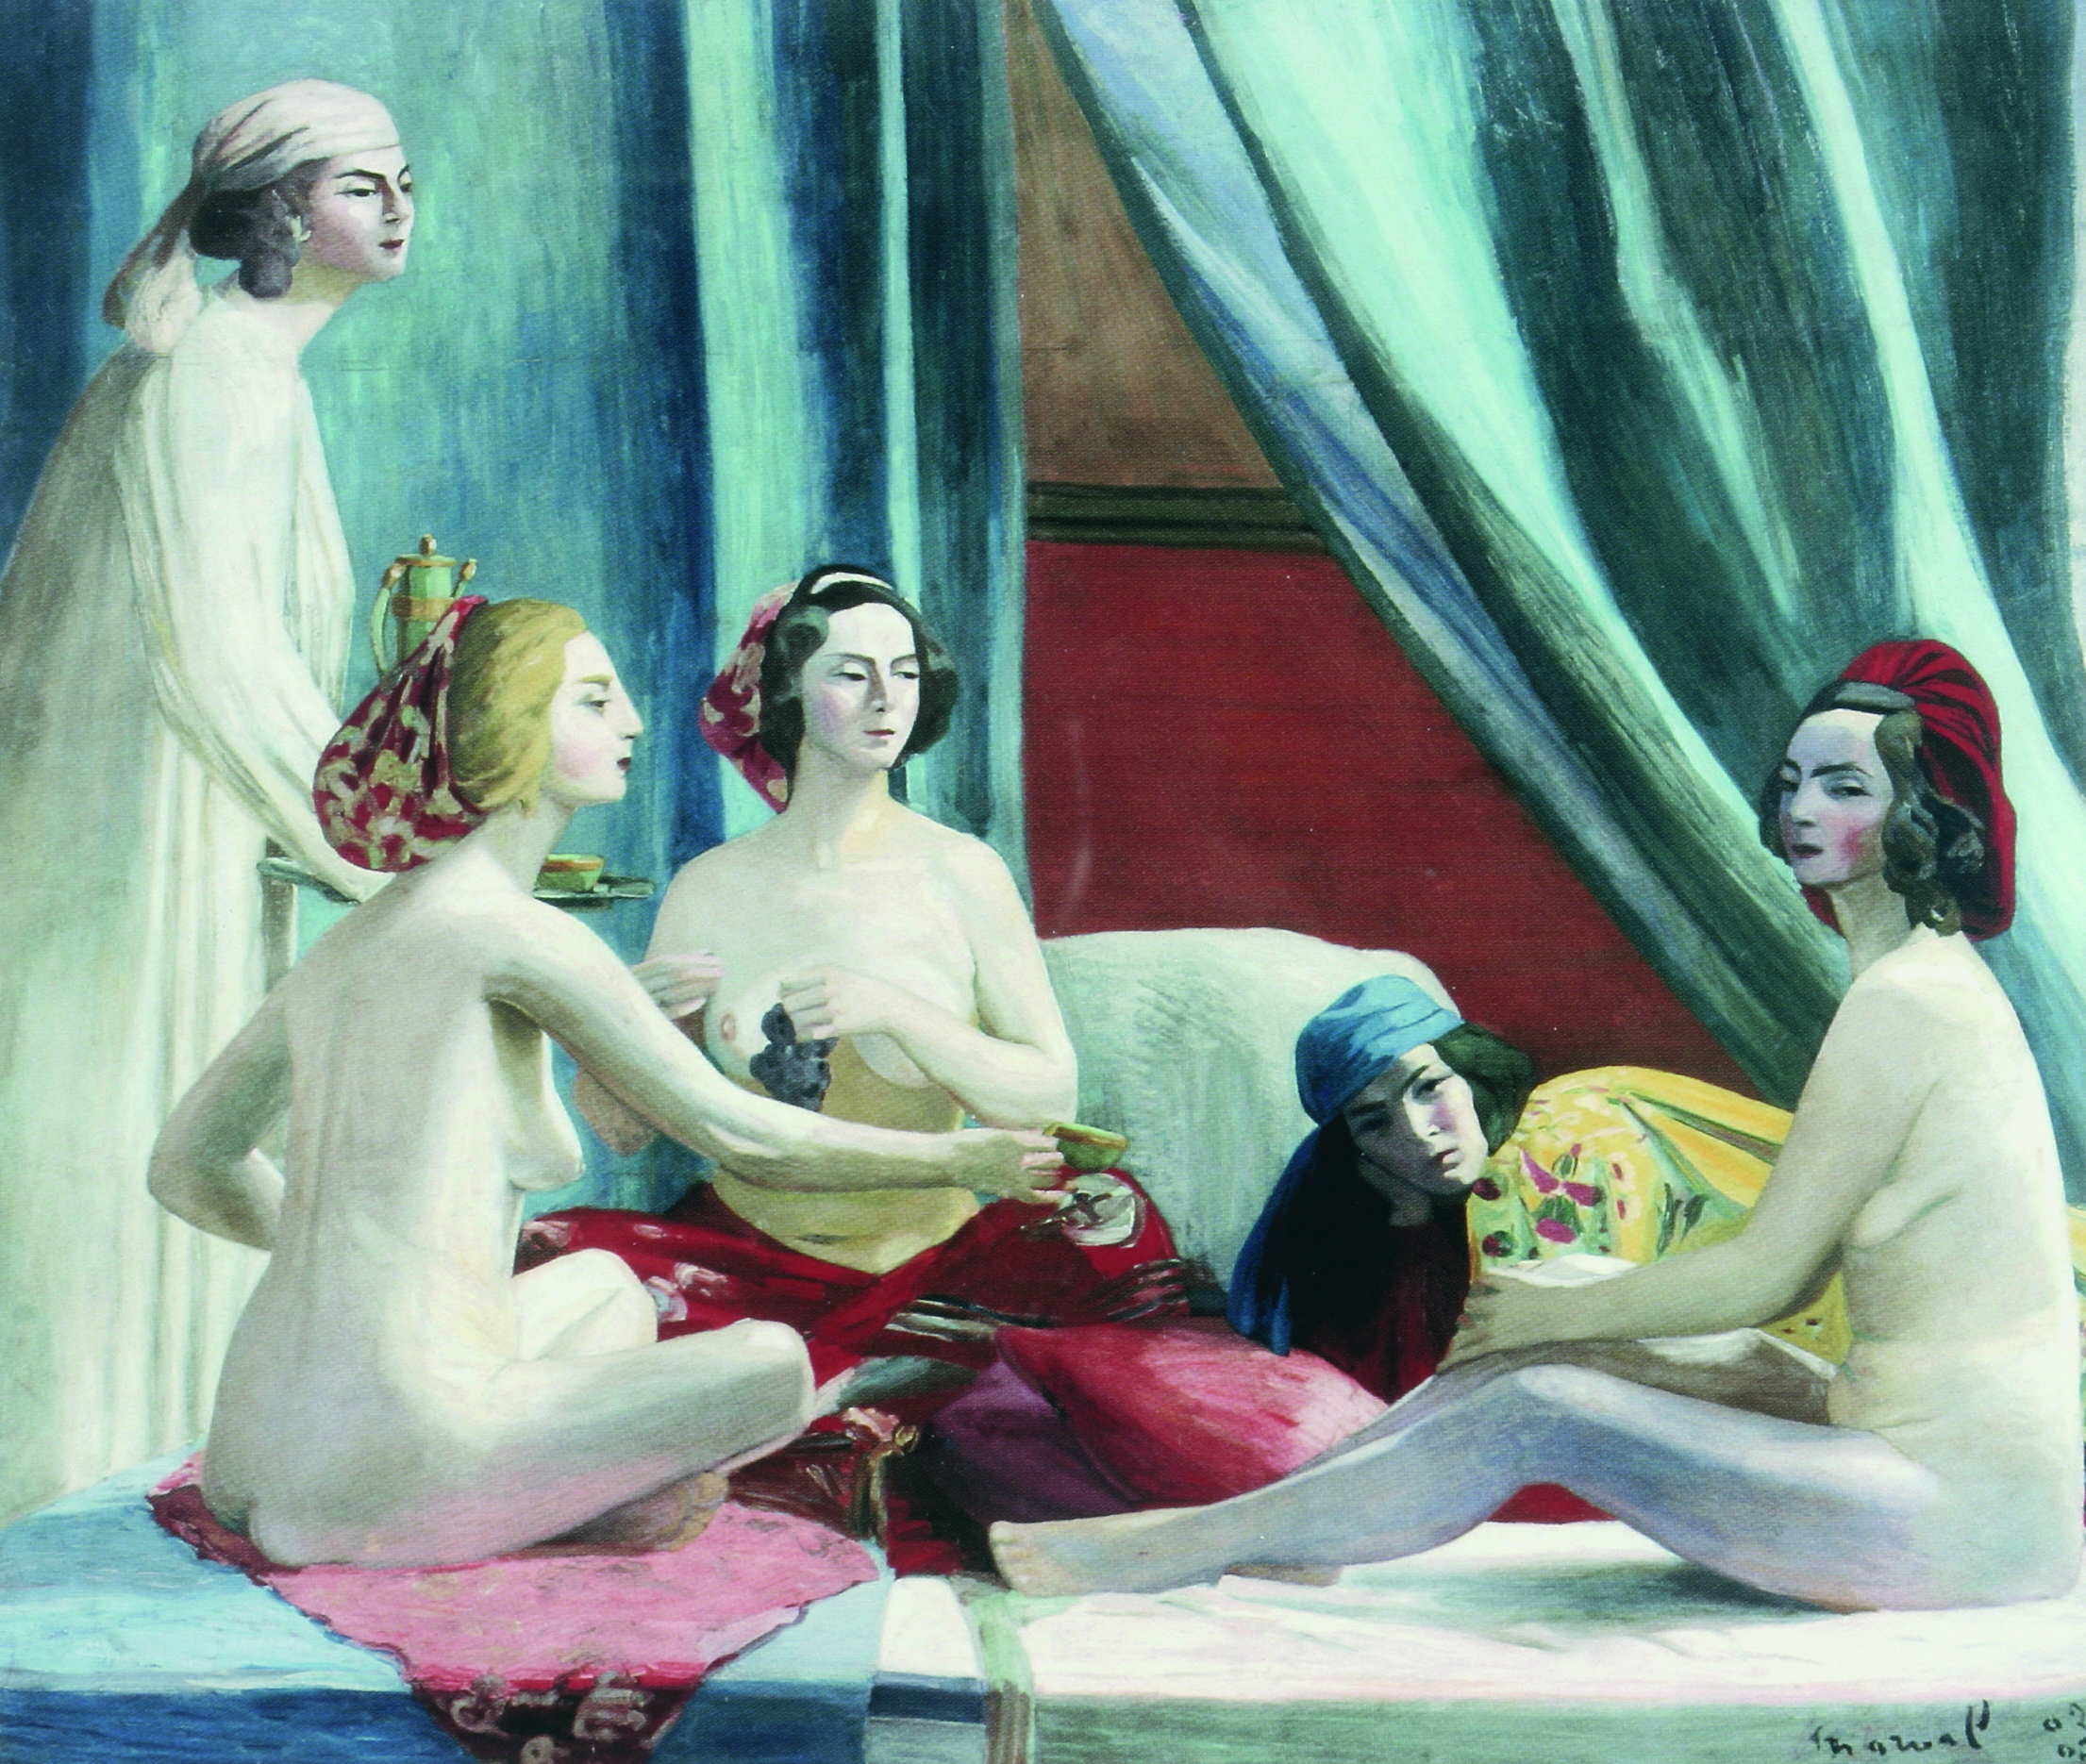 Les Odalisques, c 1902-03. Oil on canvas, 195 x 225 cm. Musée de Grenoble.